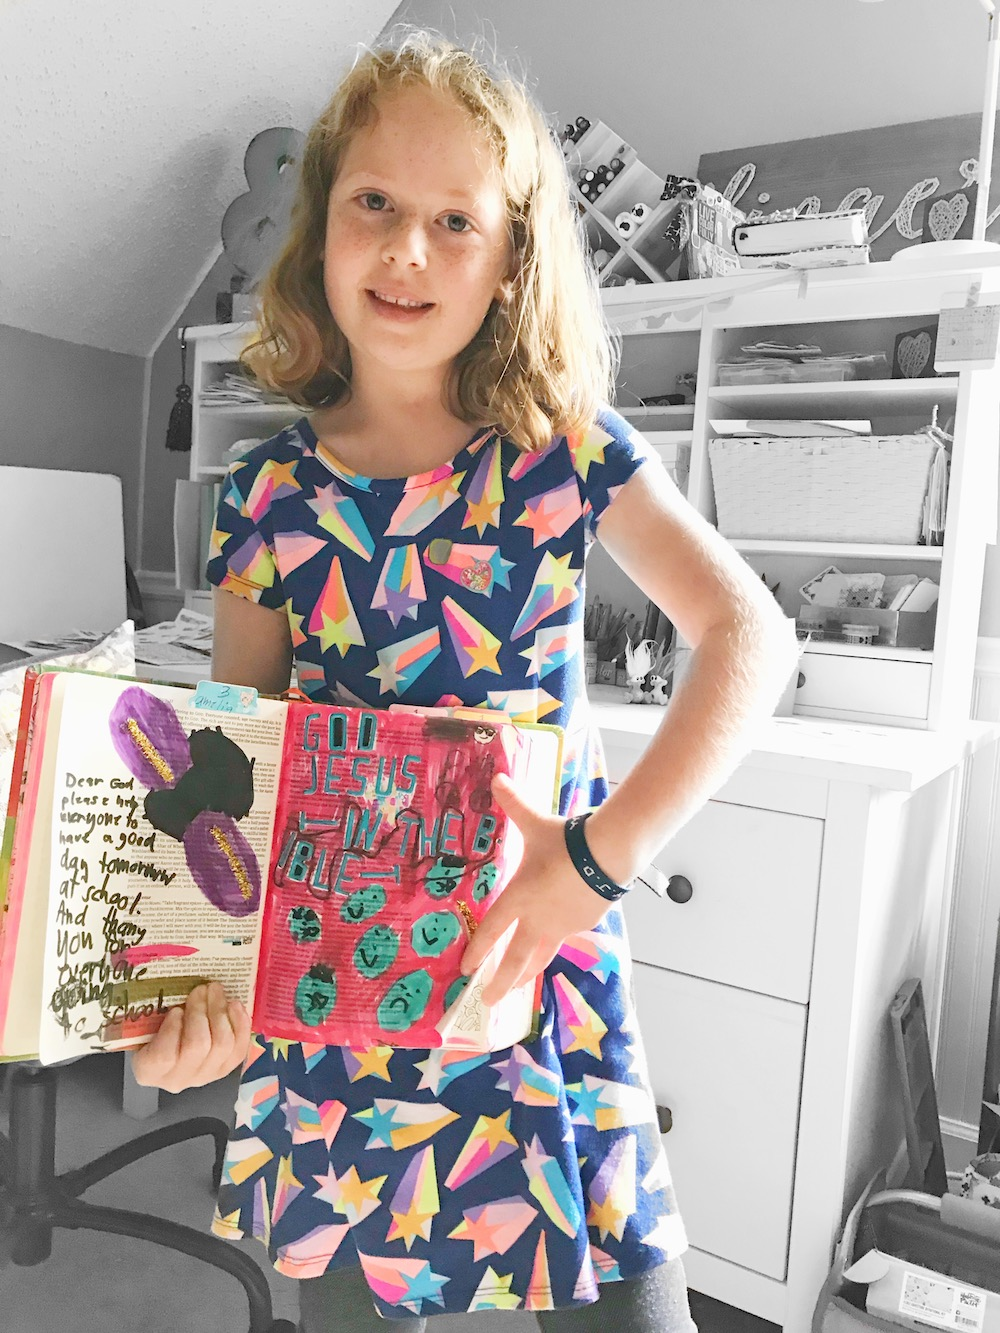 5 Tips for Bible Journaling with Kids by April Crosier aka marine_parents   #KidsintheWord   Proverbs 22:6